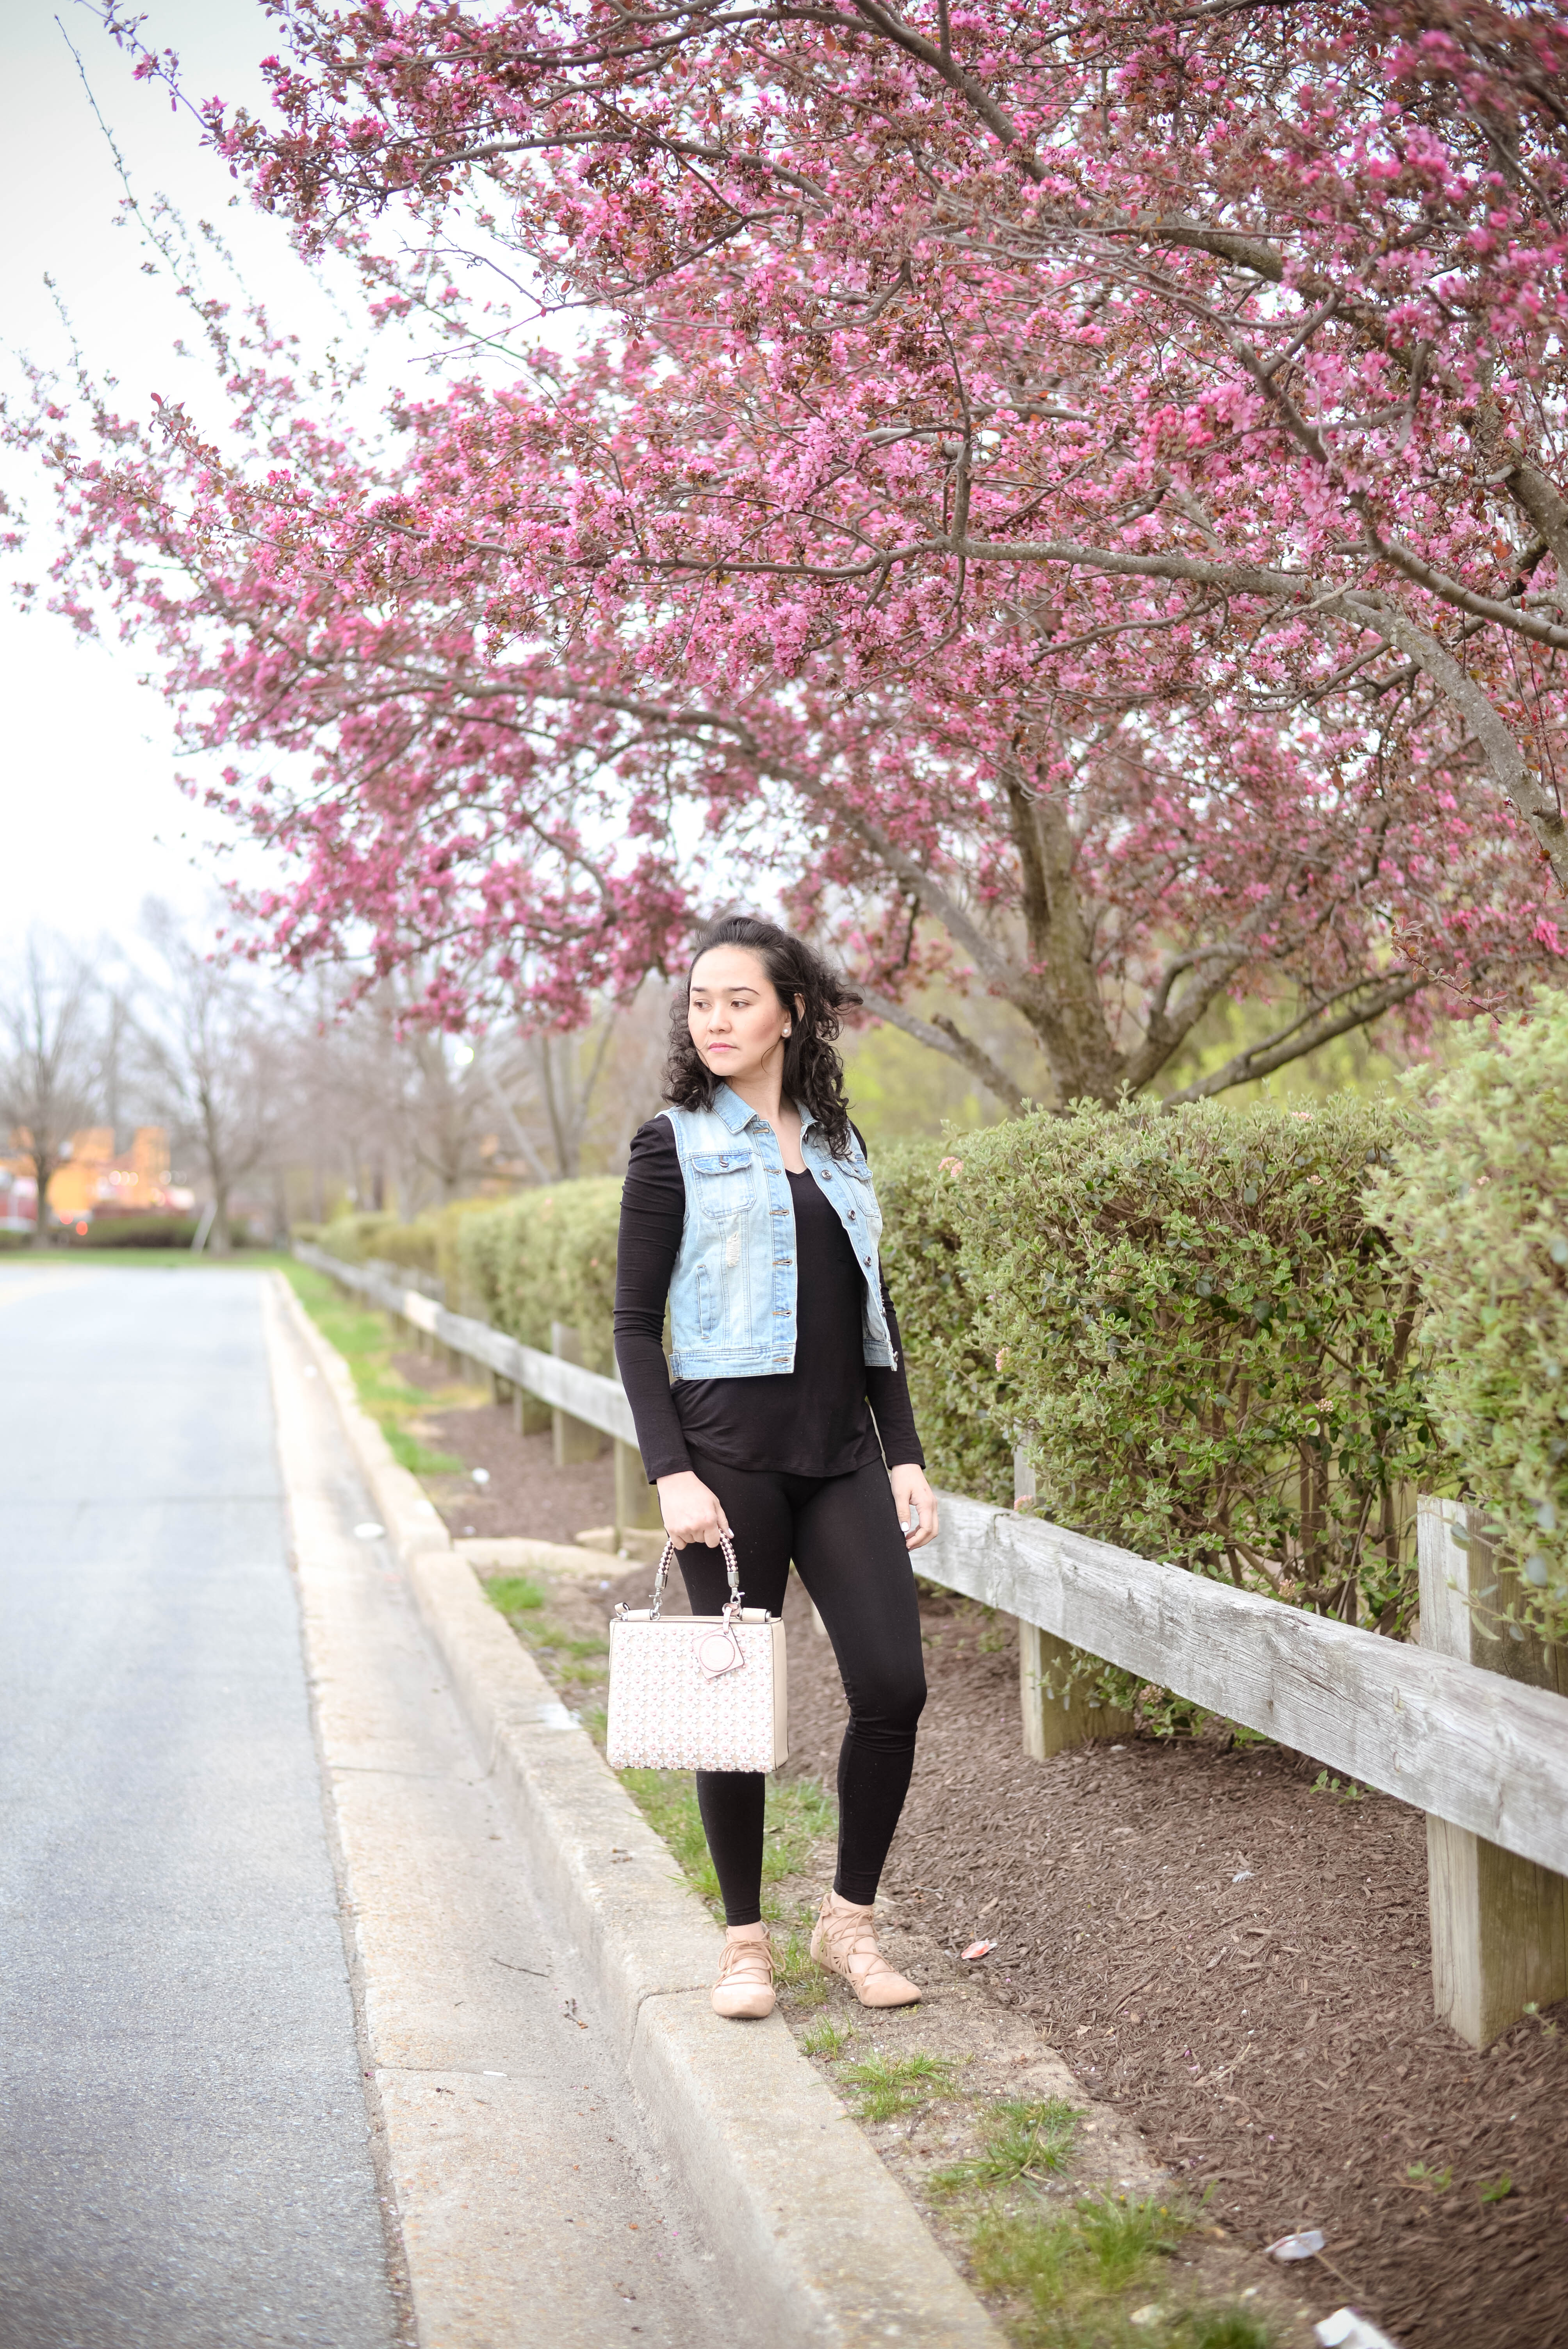 How to wear all black outfit in the Spring